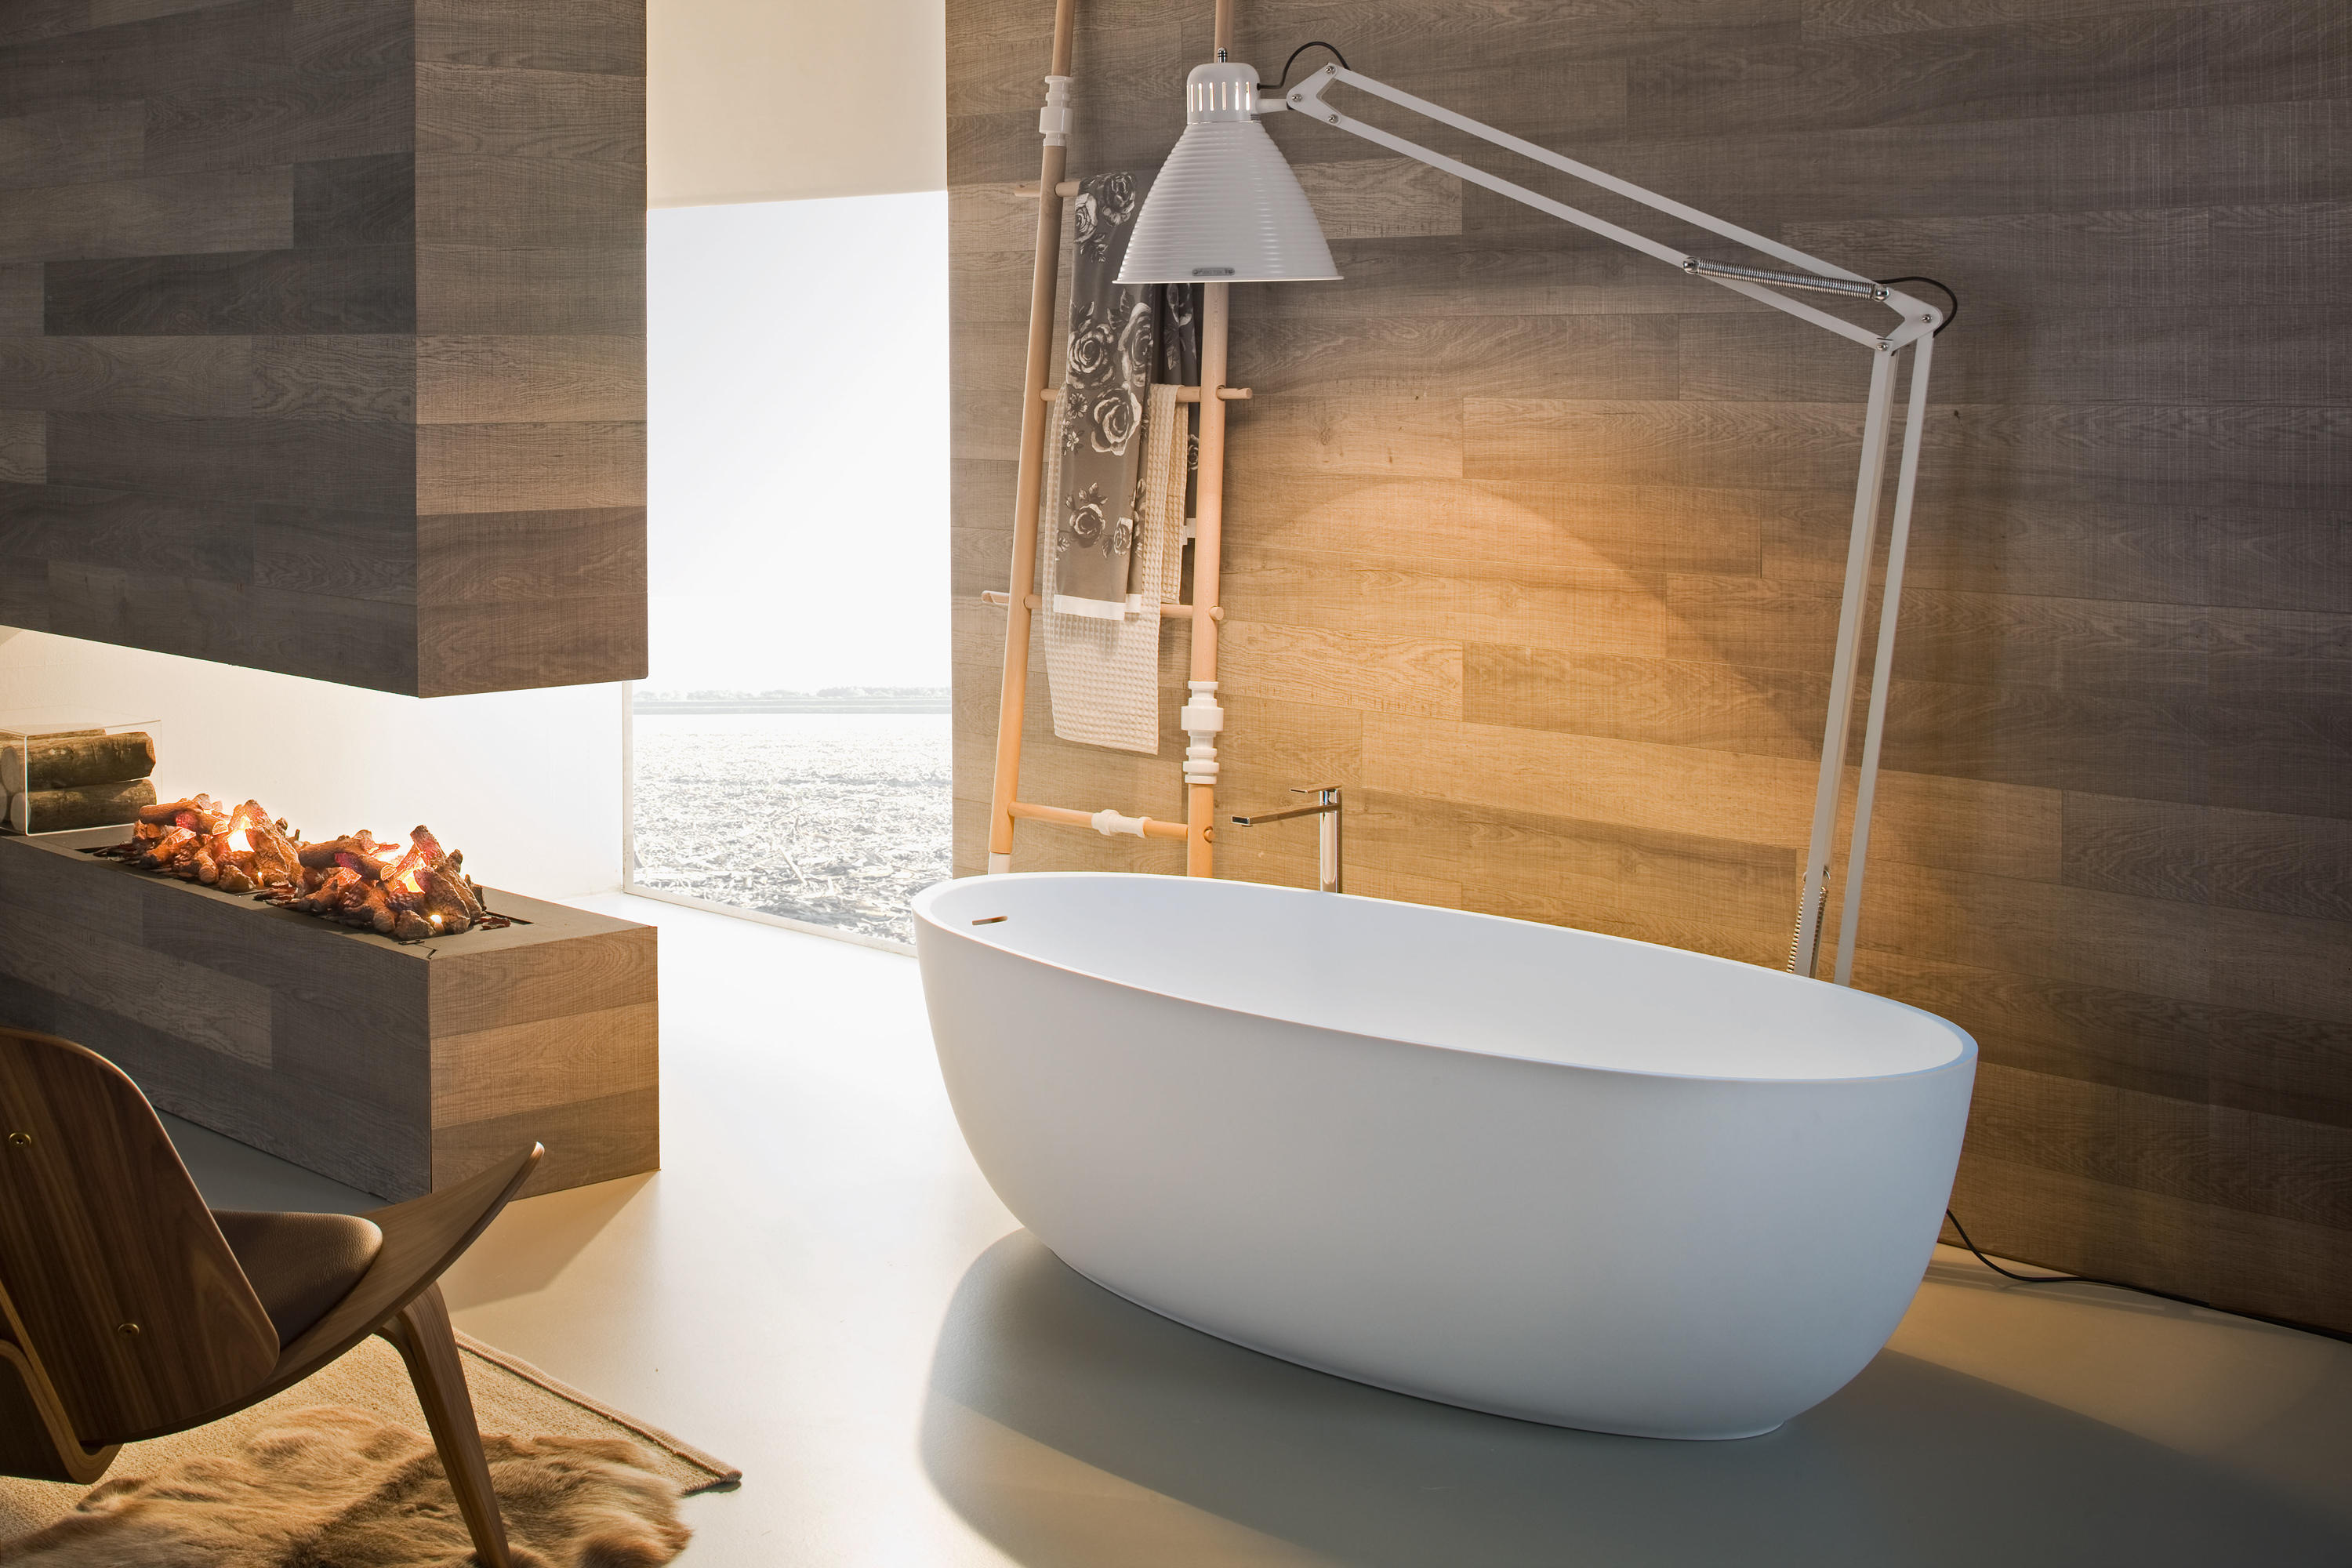 bathtube round free standing baths from idea group architonic. Black Bedroom Furniture Sets. Home Design Ideas